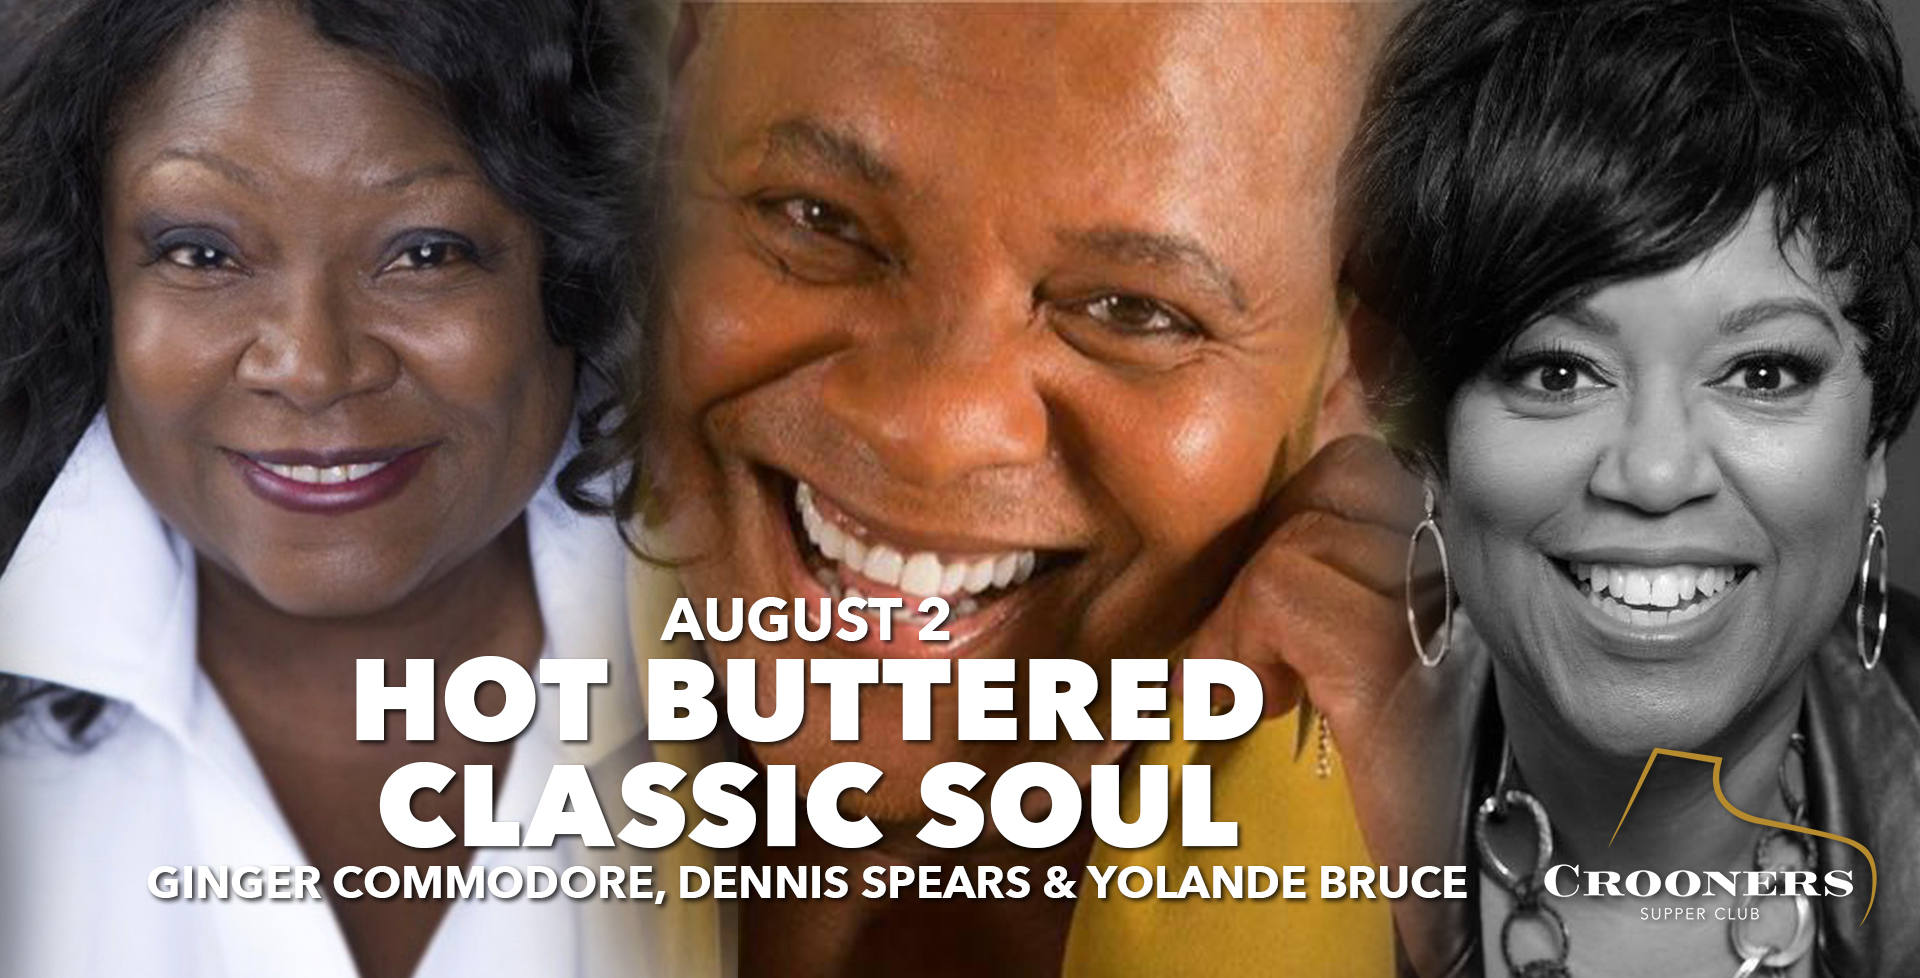 Hot Buttered Classic soul - Ginger Commodore, Dennis Spears and Yolande Bruce help us kick off the month of August, singing soulful classics from the '60s, '70s and '80s. Soul music, combining elements of African-American gospel, rhythm and blues and jazz… We're guaranteed to have some hot fun in the summertime, since these three local sweethearts, who've been singing together for years, know exactly where our bread is buttered!